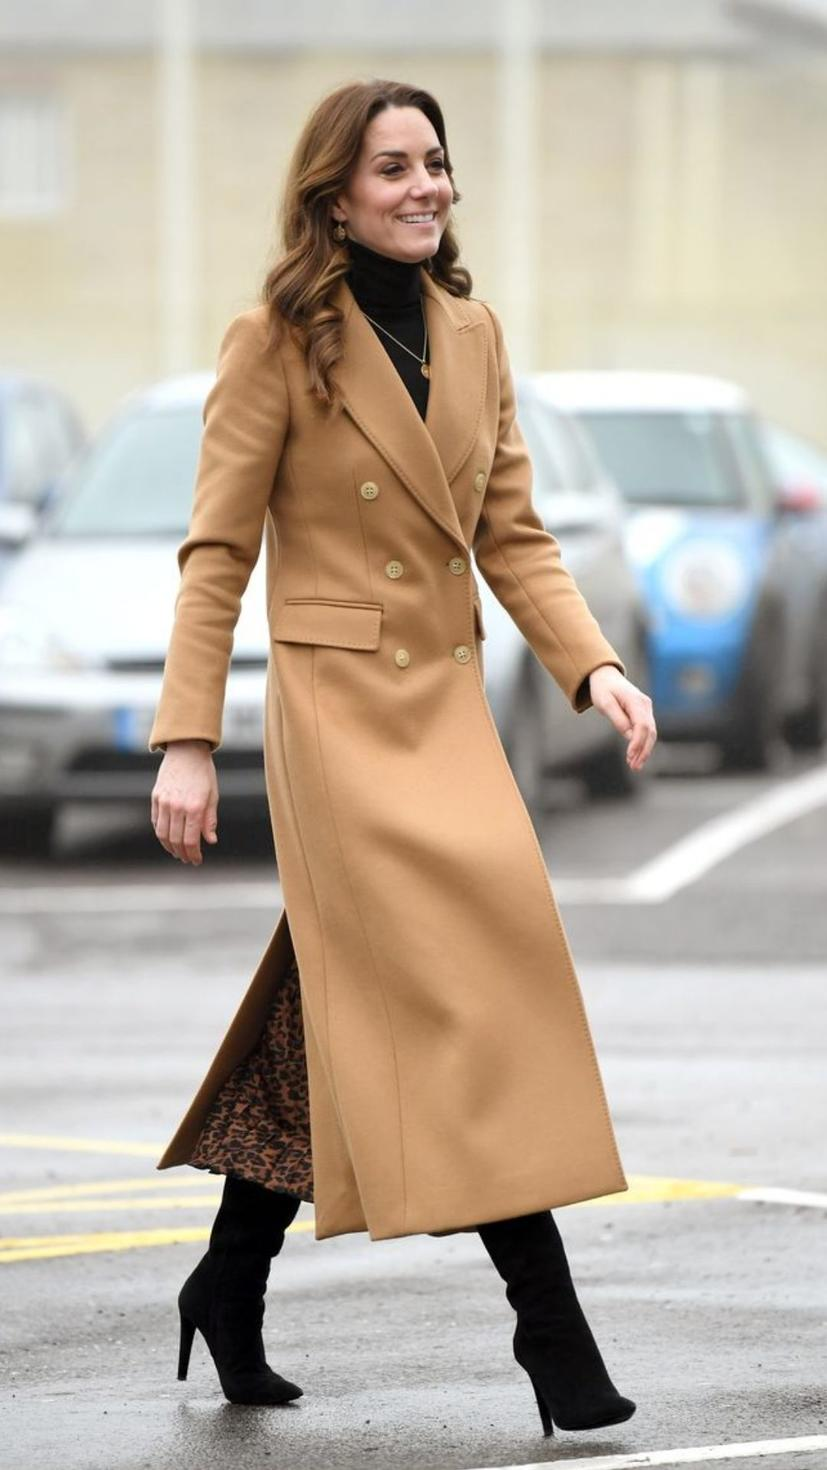 The Duchess of Cambridge steps out in a brown camel Massimo Dutti coat, a Zara dress and Ralph Lauren boots